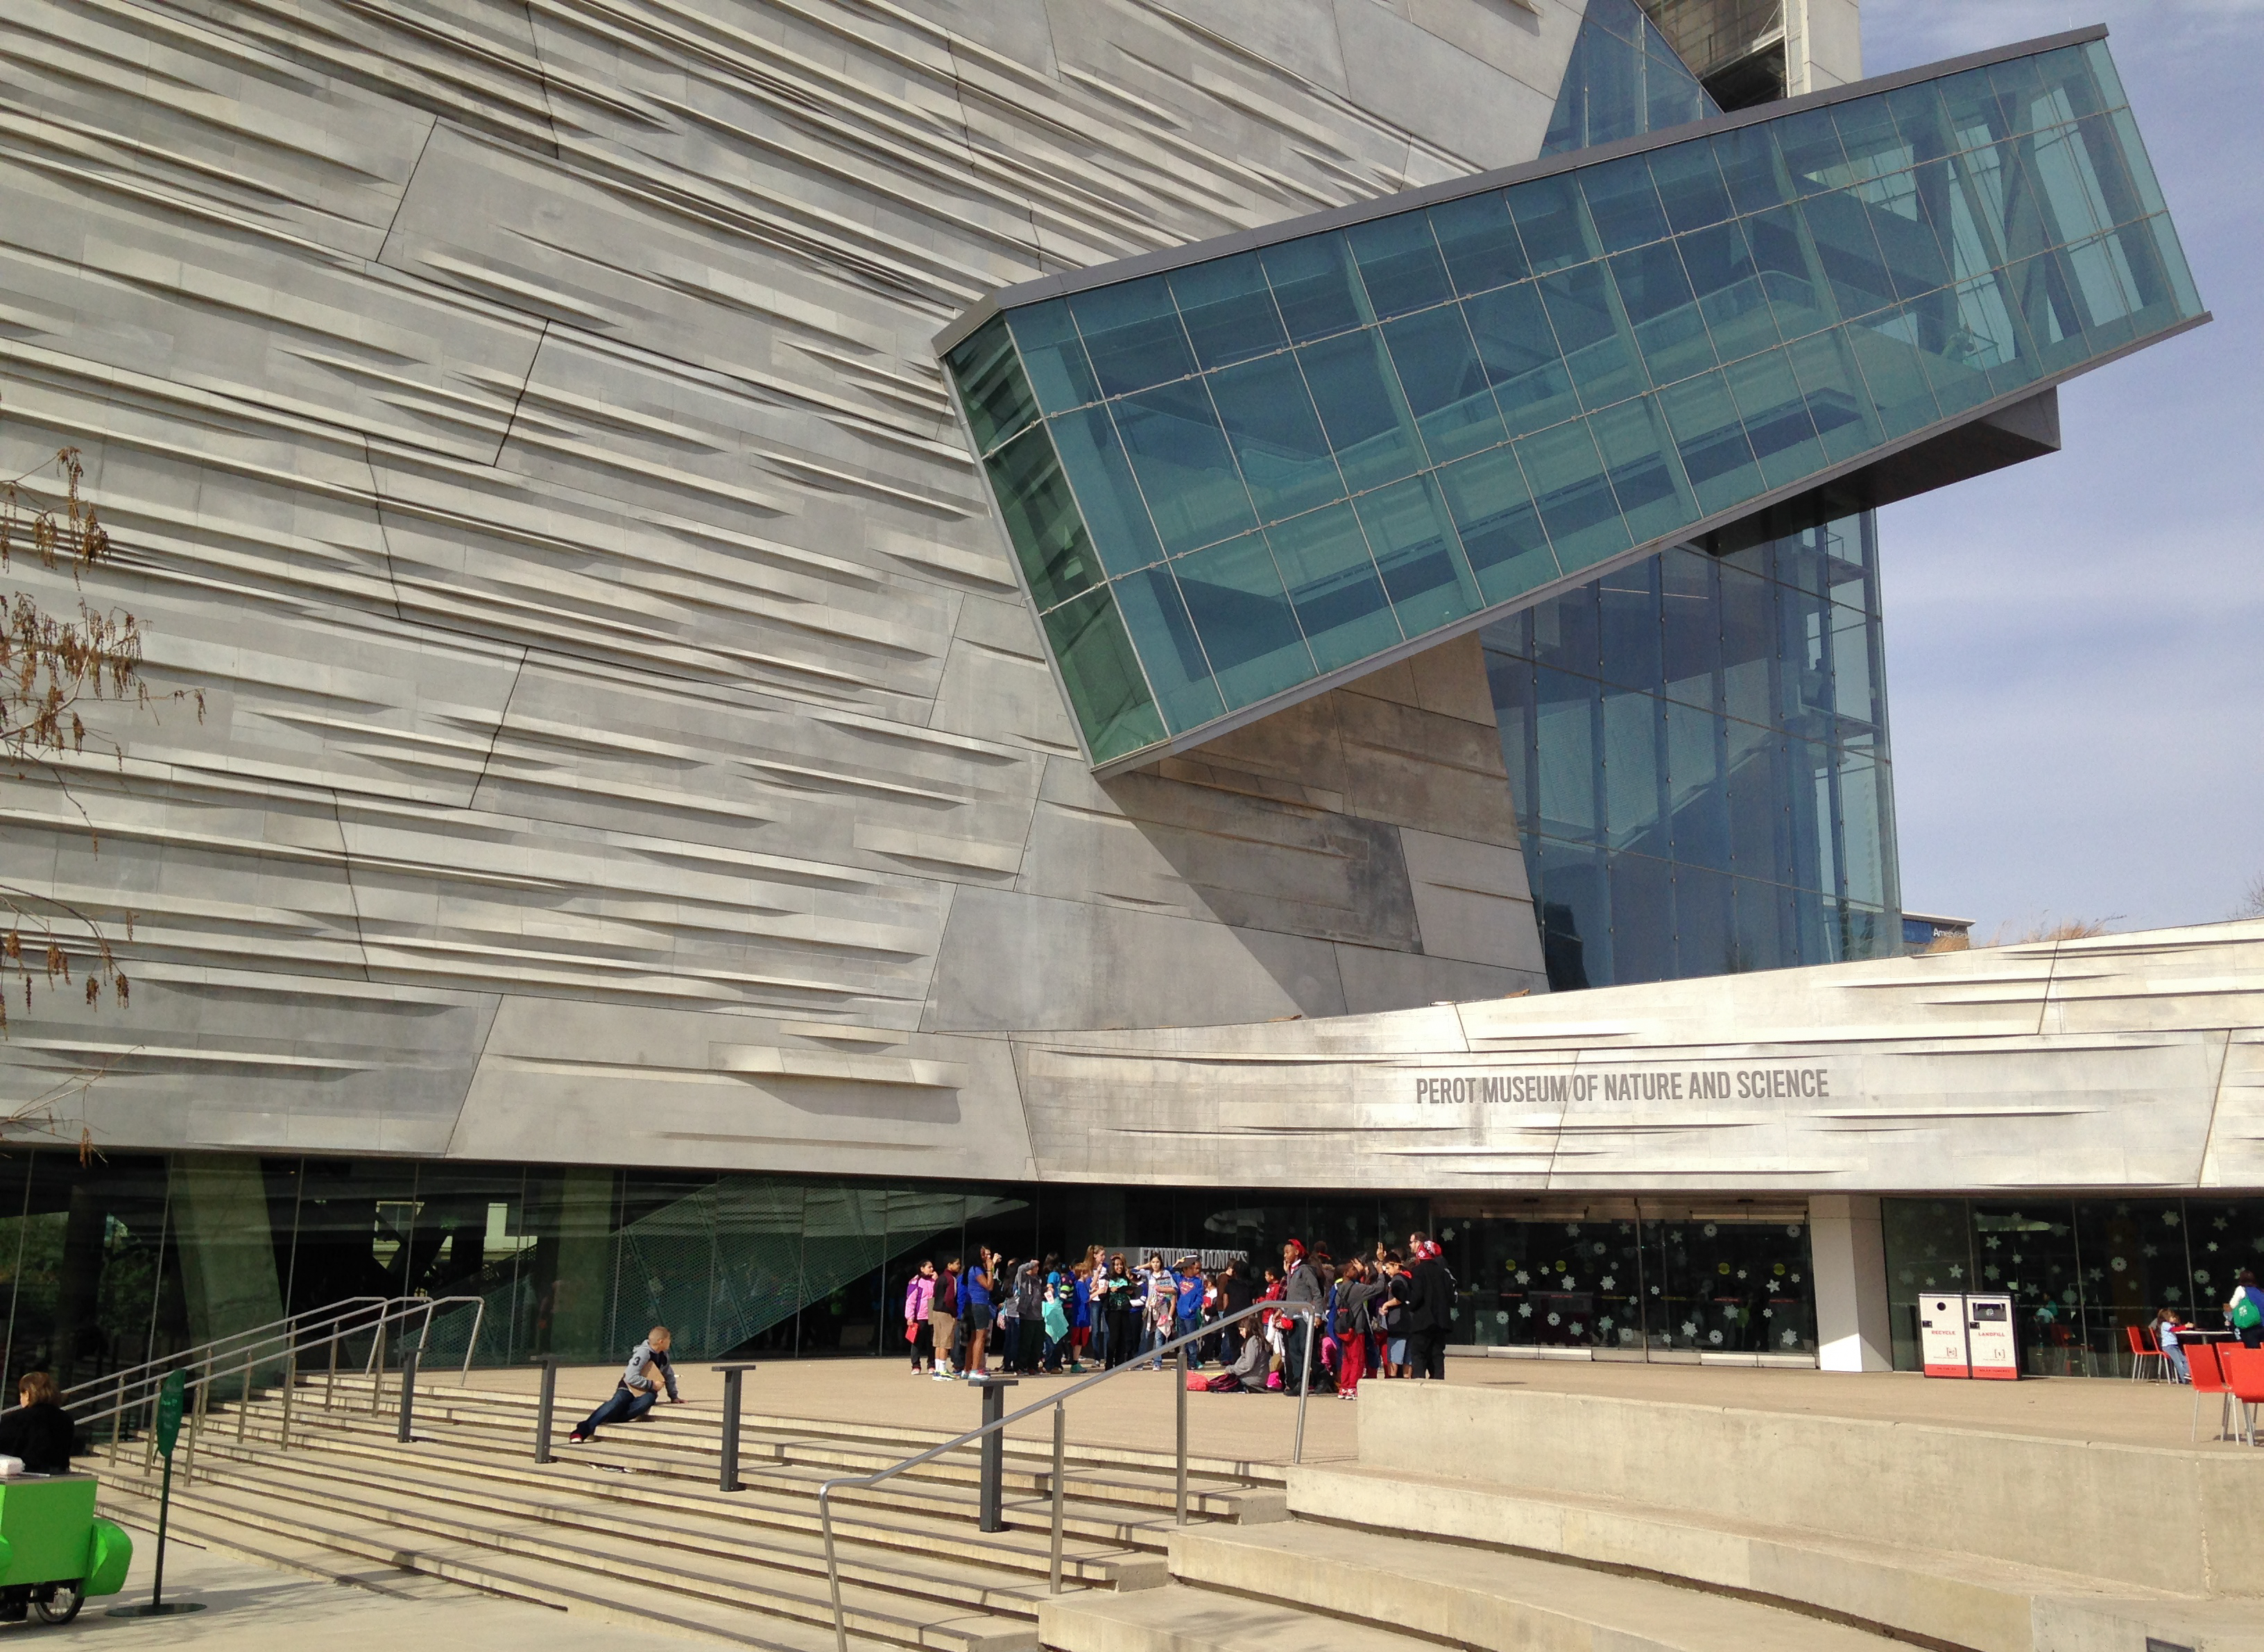 Entry plaza of Perot Museum of Nature and Science.